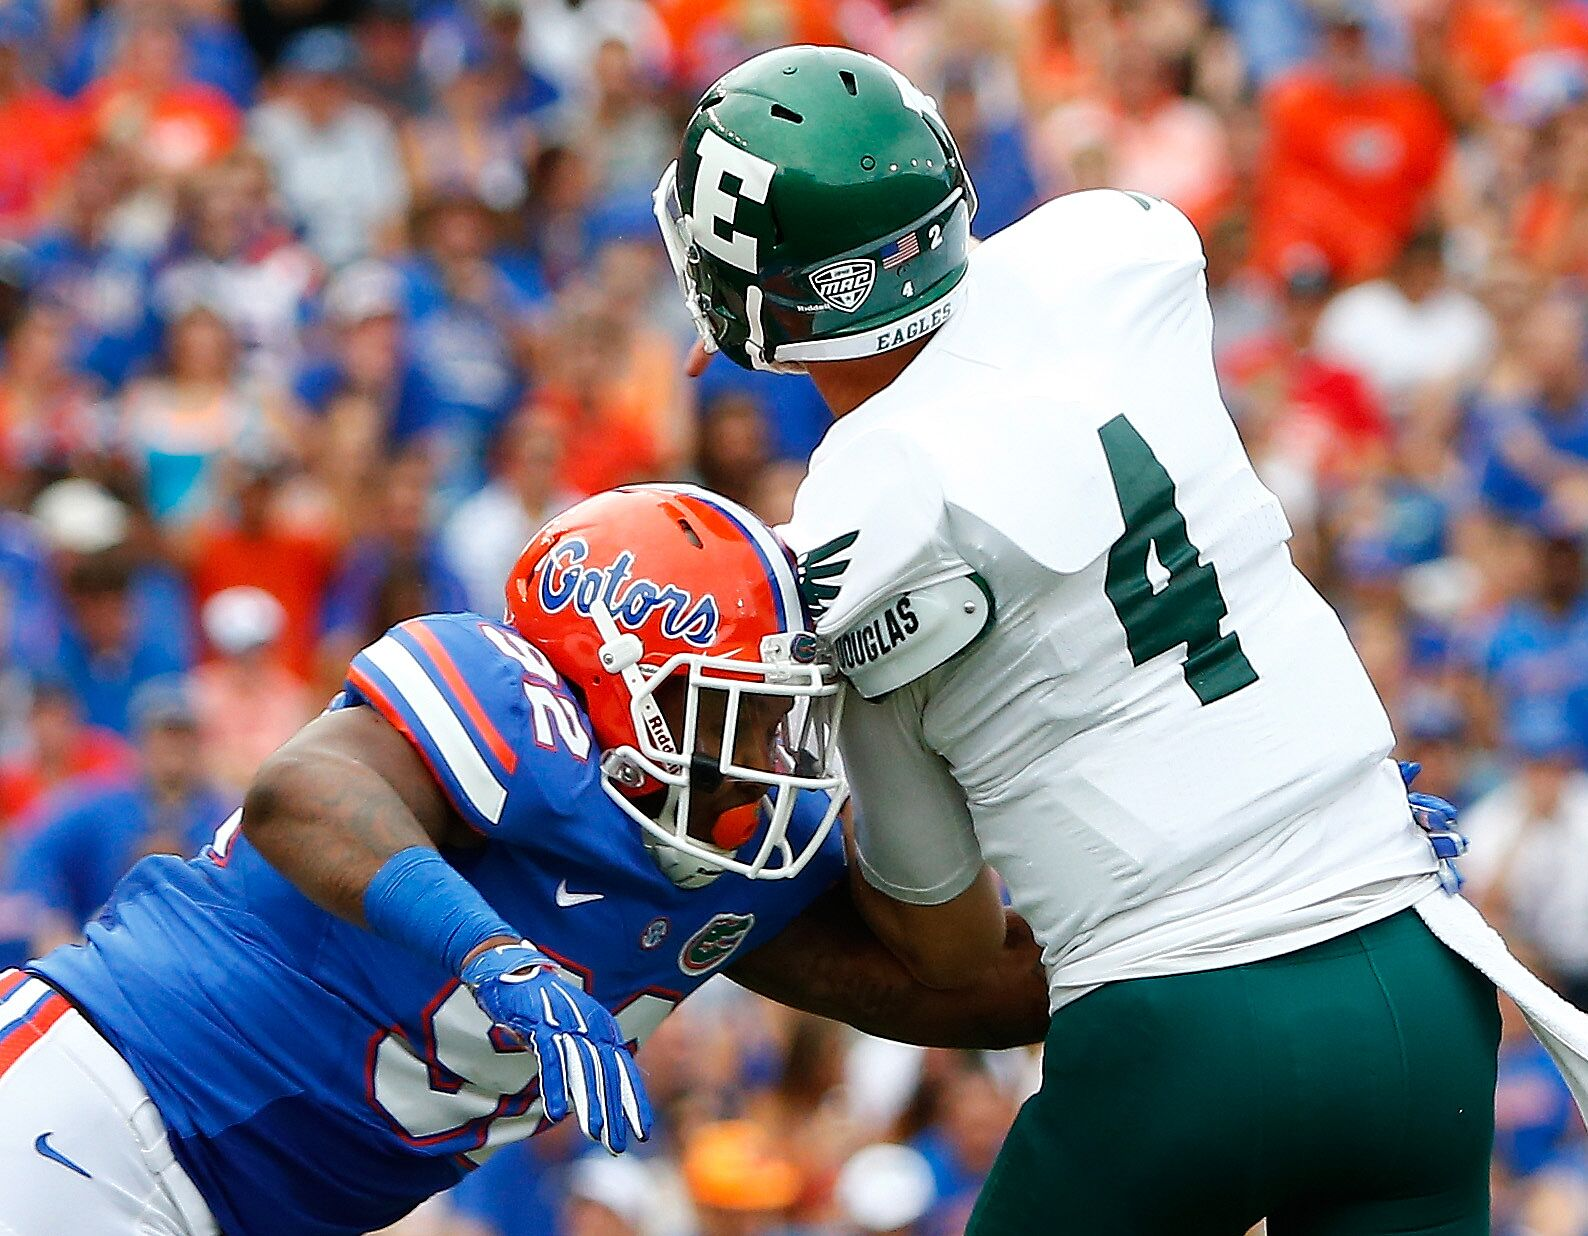 new arrival f3f3e 9c21b 2019 NFL Draft Profile: Gerald Willis III a fit for the ...